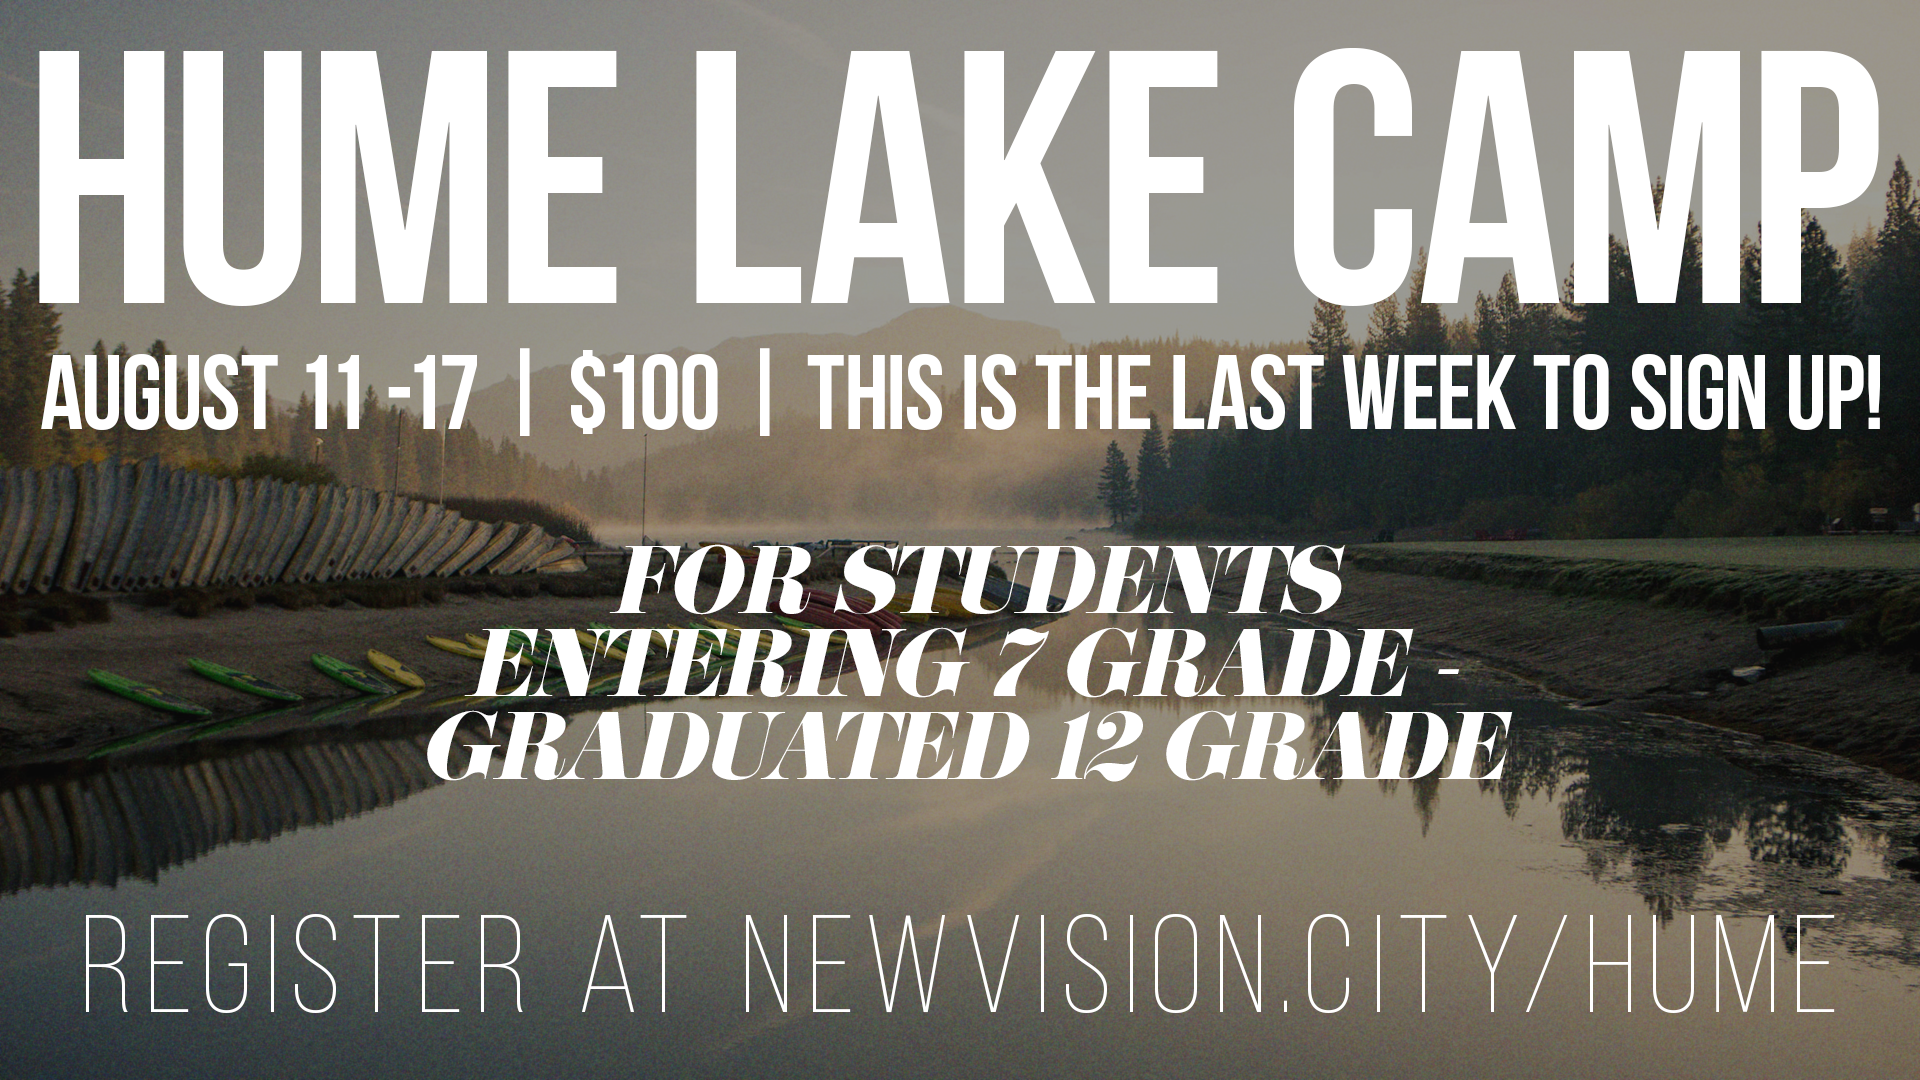 For students entering 7th grade through graduated seniors. Spend a week in the Sierra Nevadas with your friends and grow closer to the Lord! $100 registration. To register go to new vision.city/hume or sign up with Amanda Hyden. Last week to register